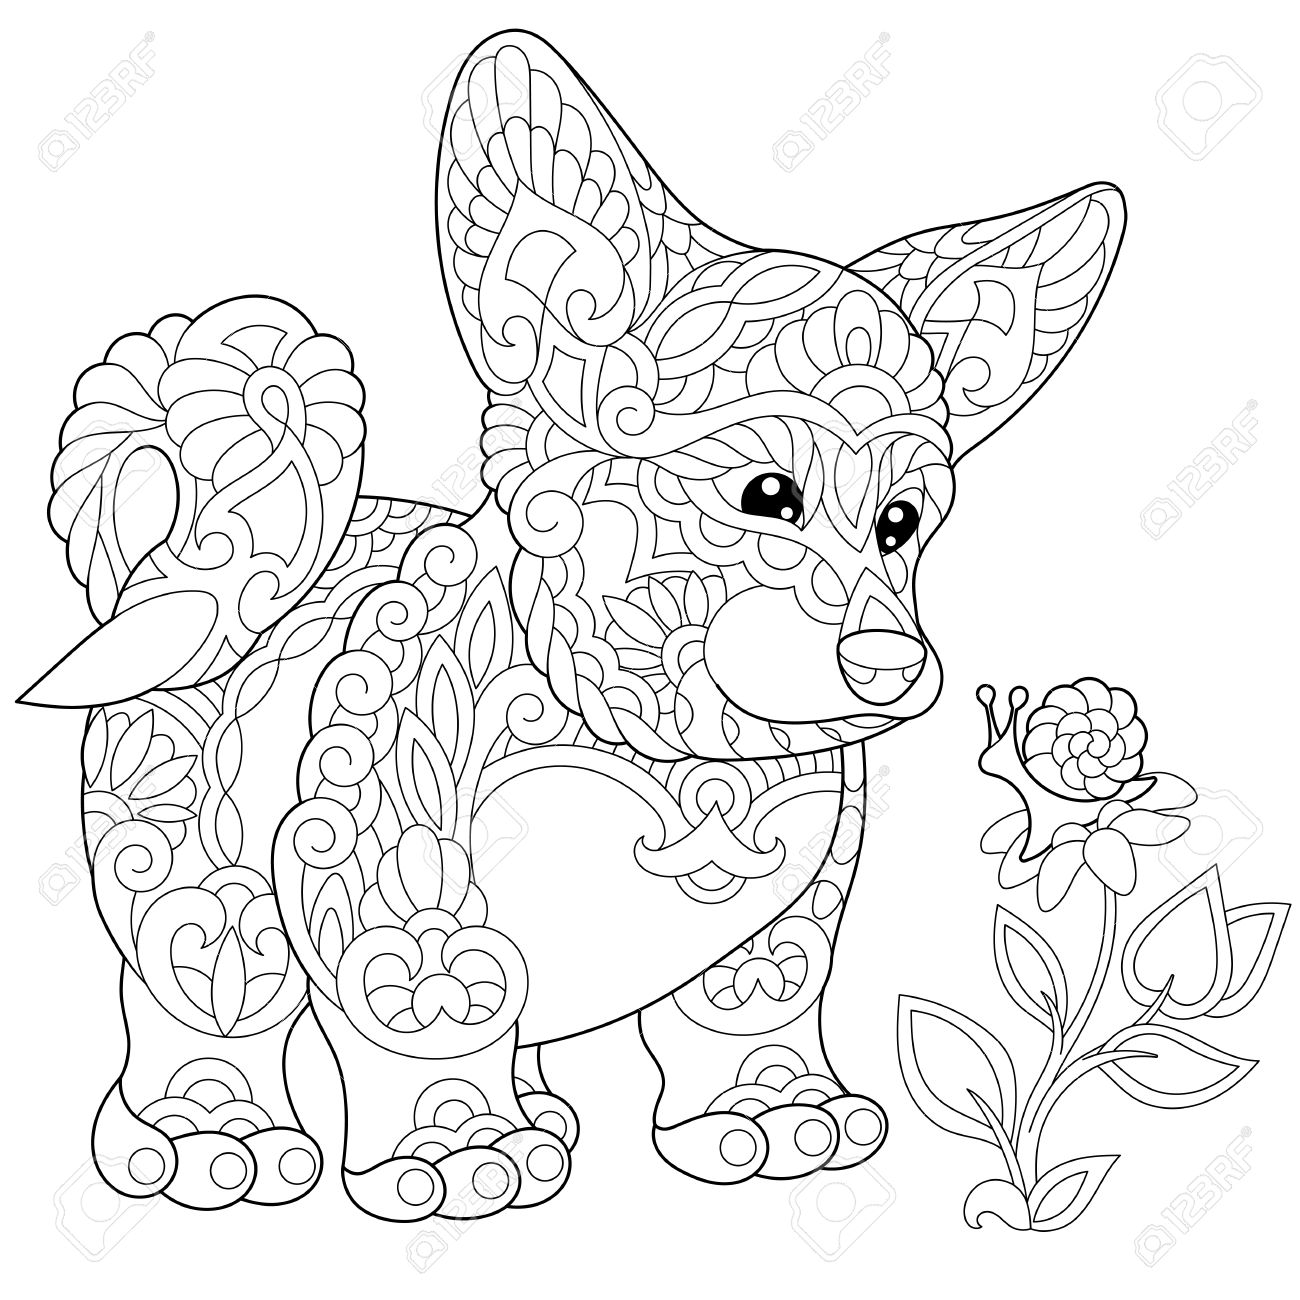 coloring page of cardigan welsh corgi puppy freehand sketch